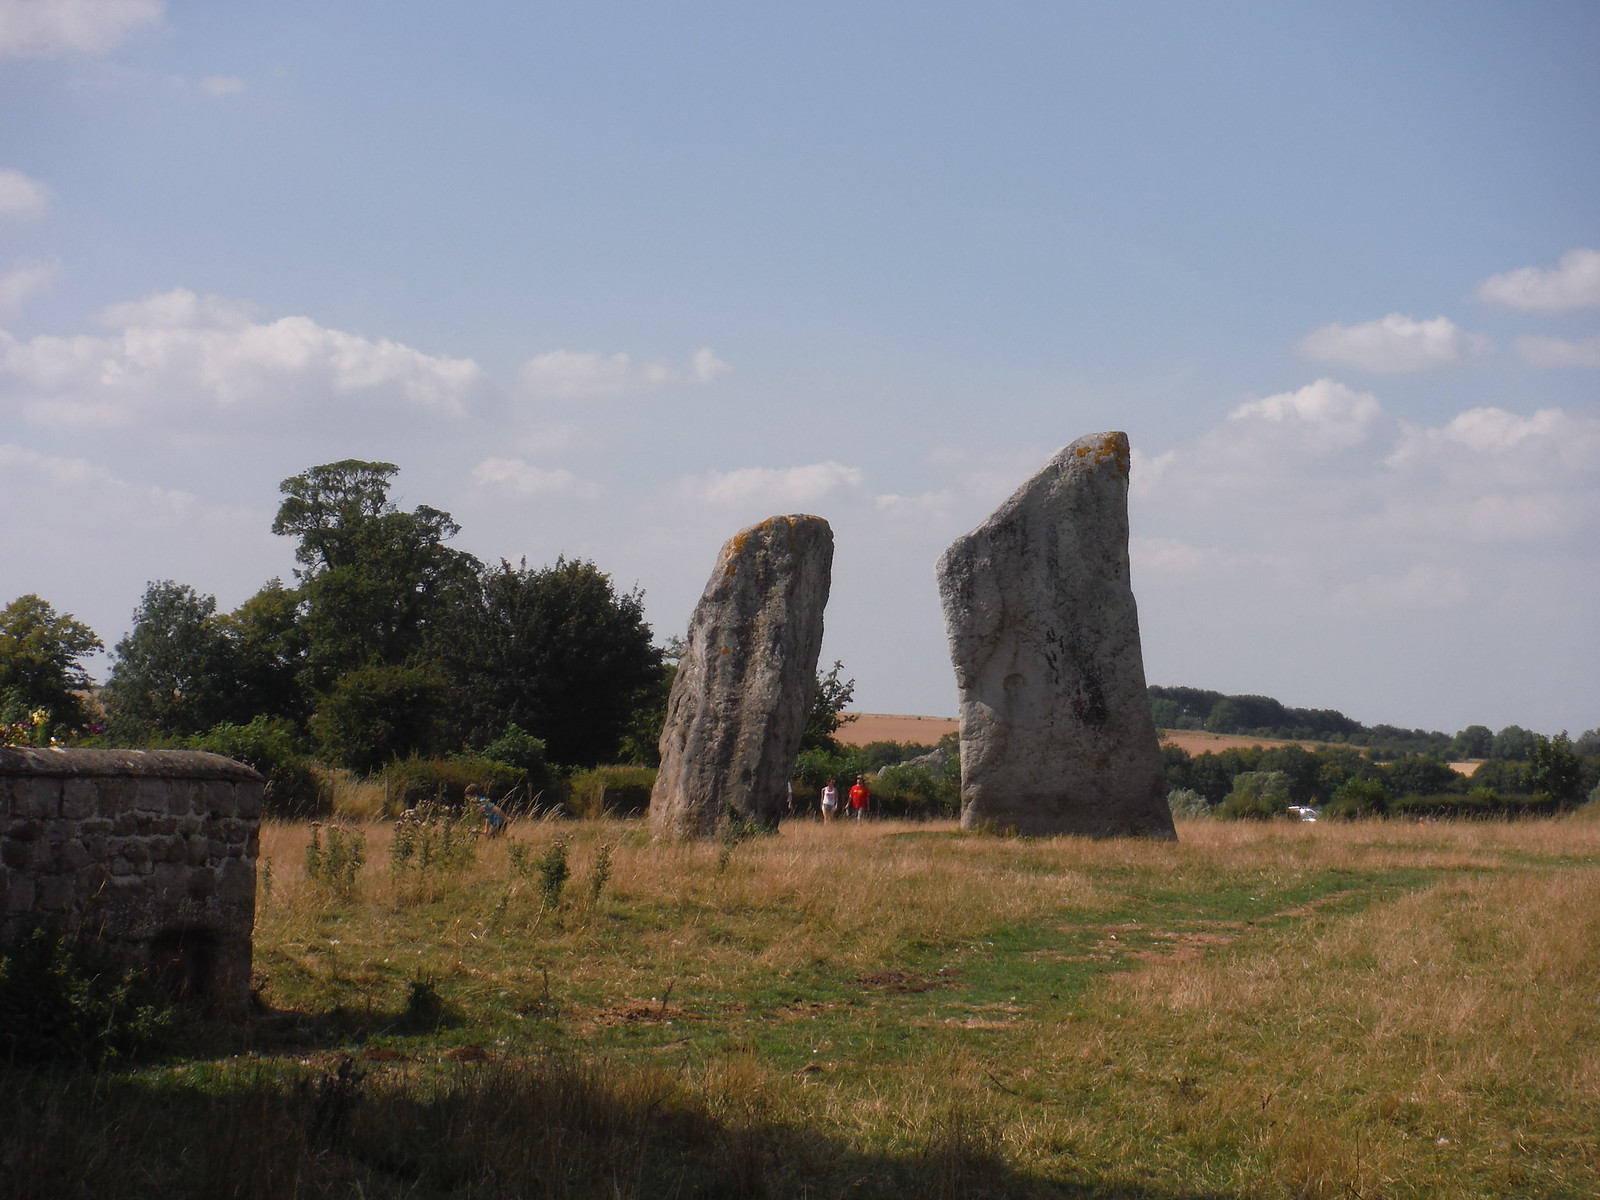 Avebury Standing Stones, NE quartile SWC Walk 255 Pewsey or Marlborough Circular via Avebury